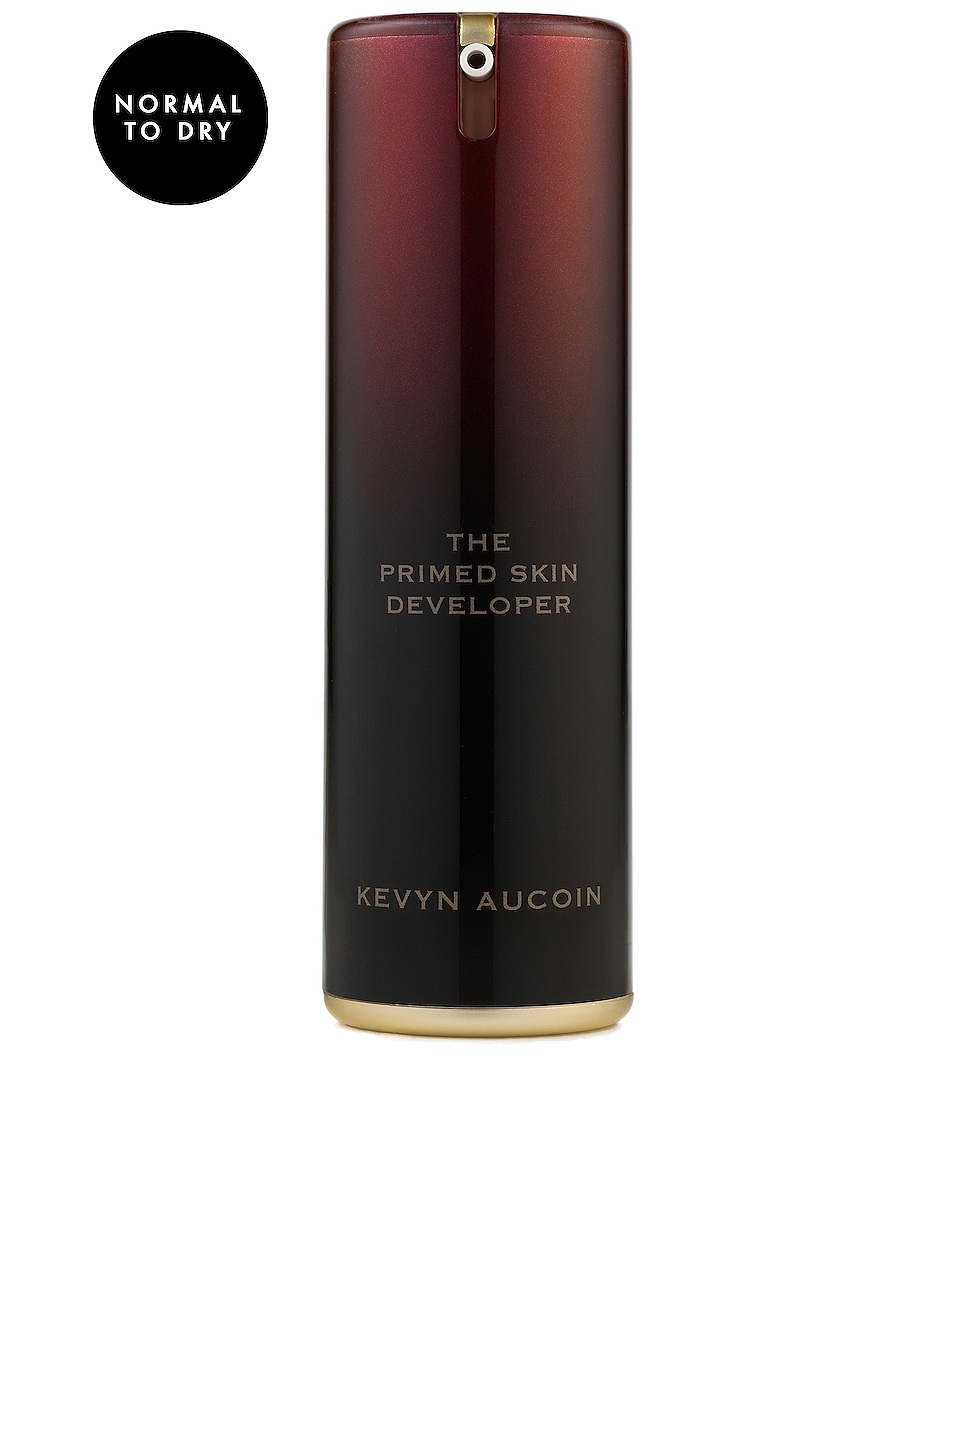 Kevyn Aucoin The Primed Skin Developer in Normal to Dry Skin